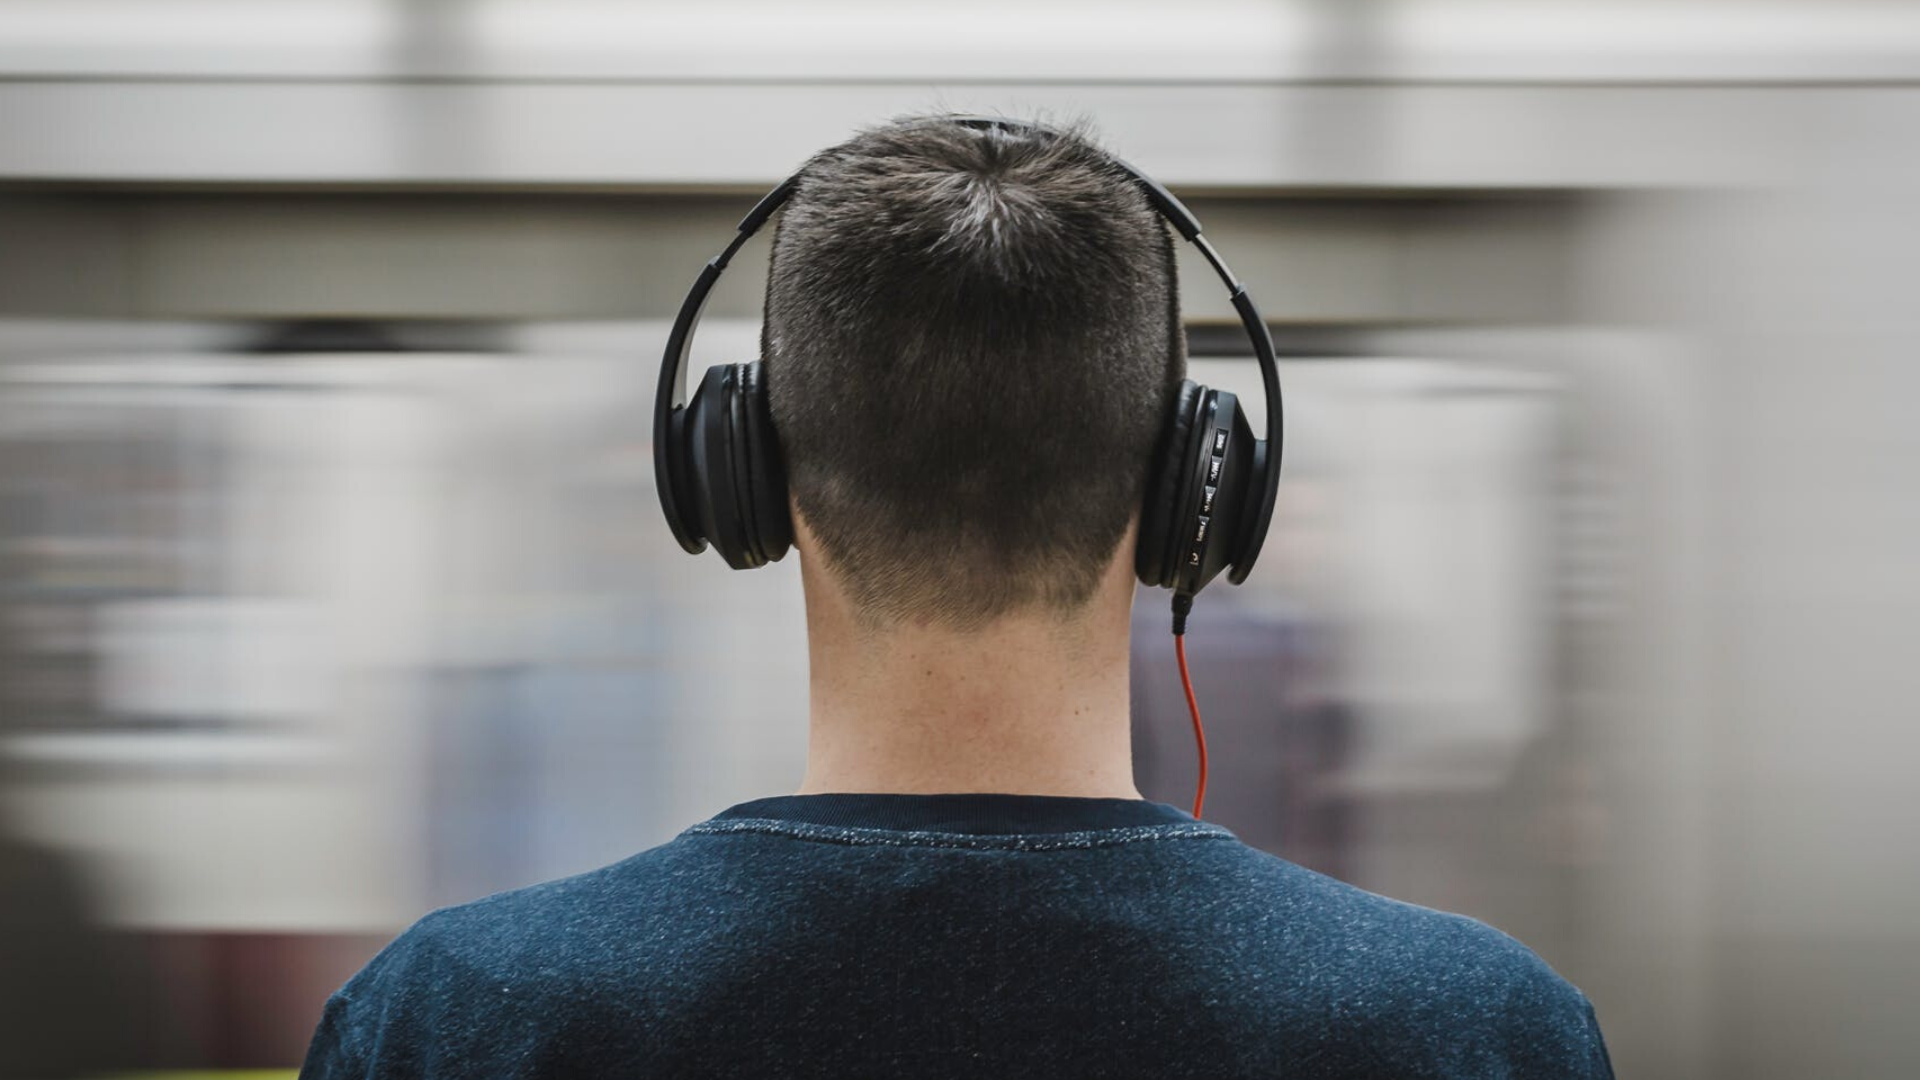 7 Side Effects of Listening to Music Over Headphones